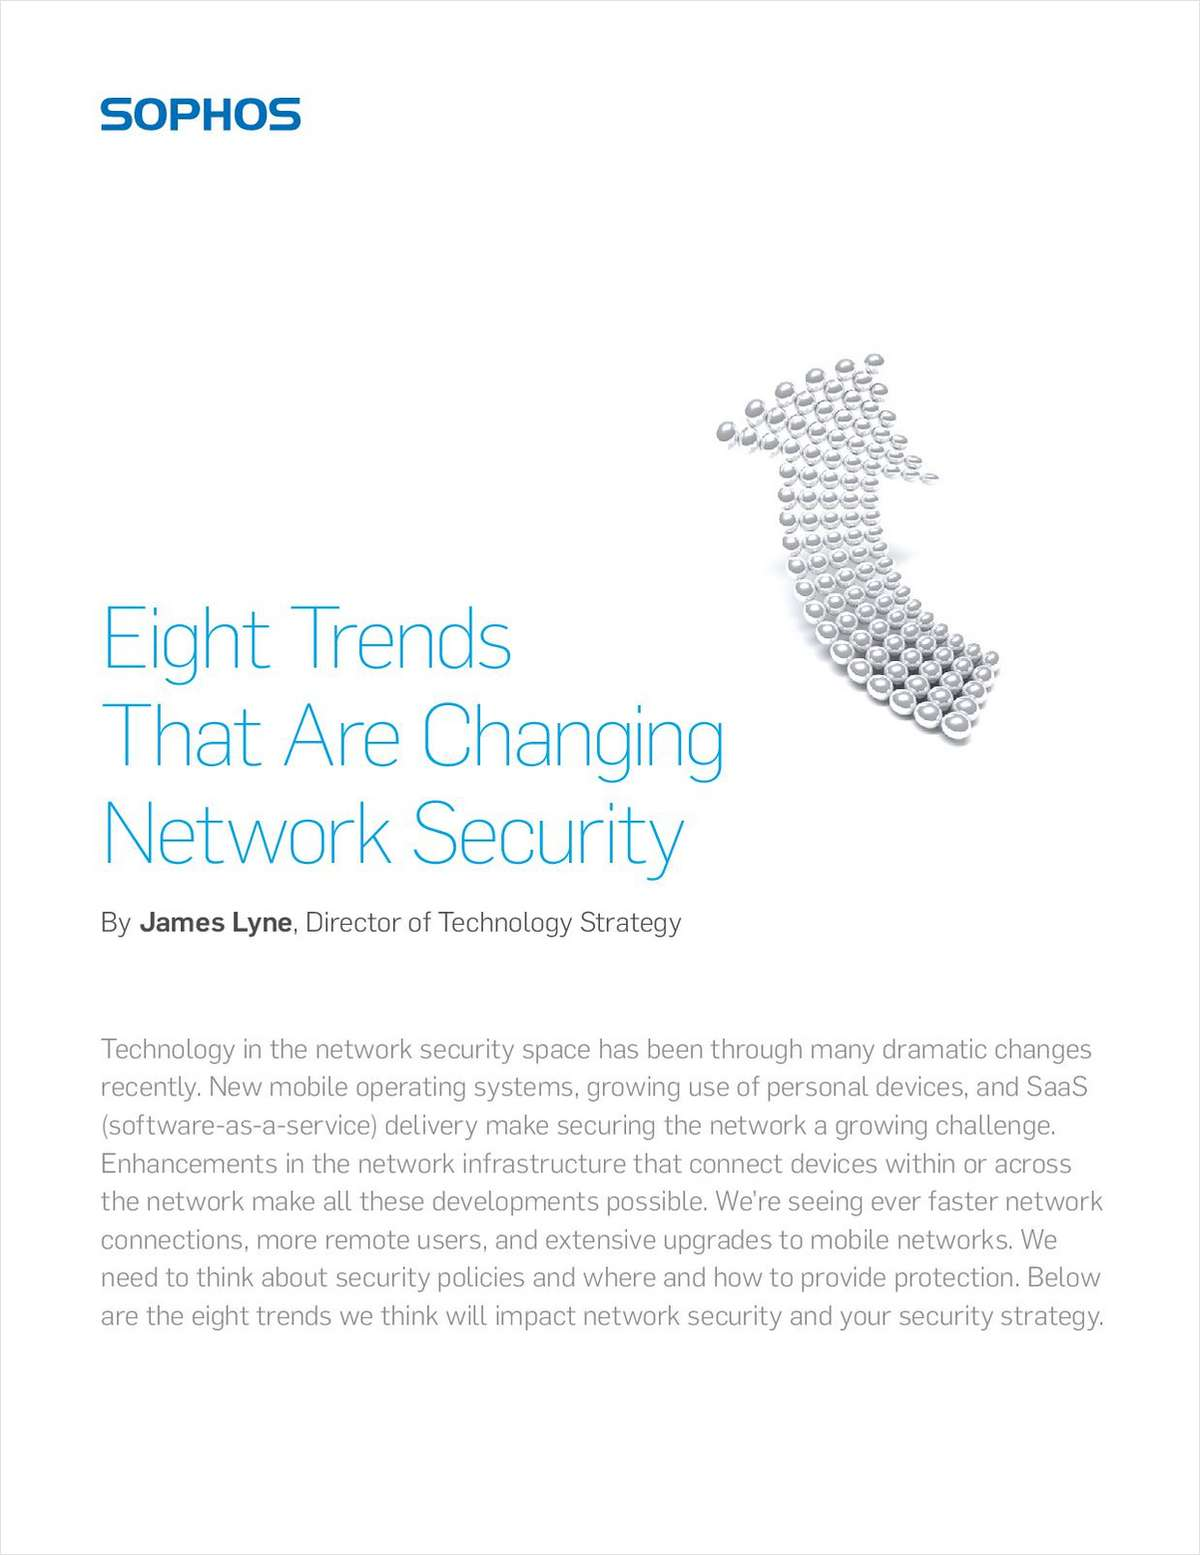 Eight Trends That Are Changing Network Security